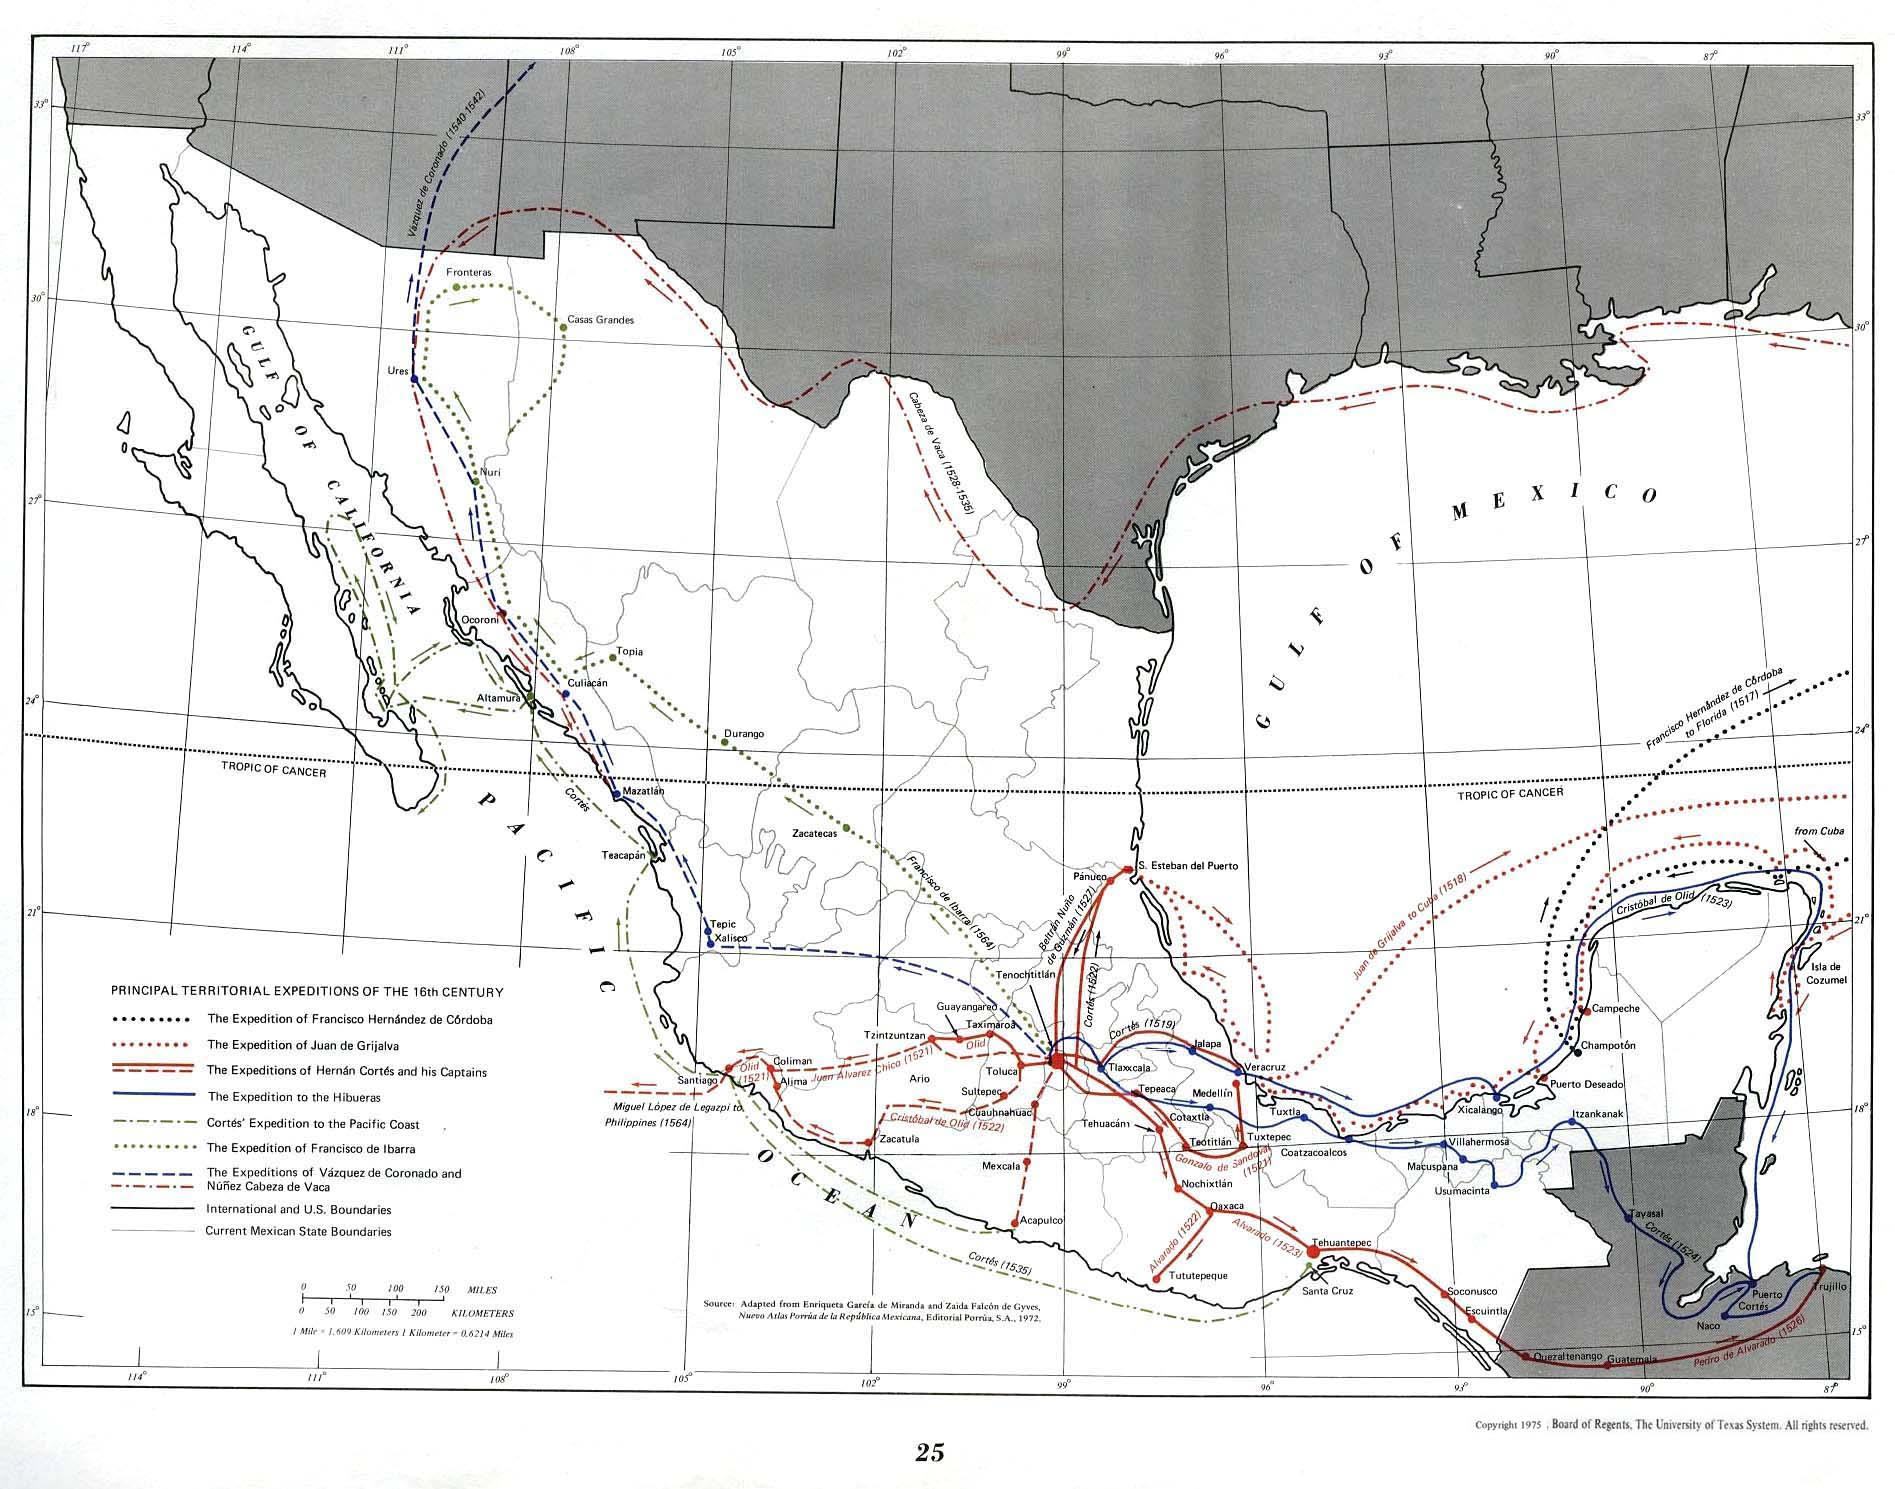 Mexico Maps - Perry-Castañeda Map Collection - UT Library Online